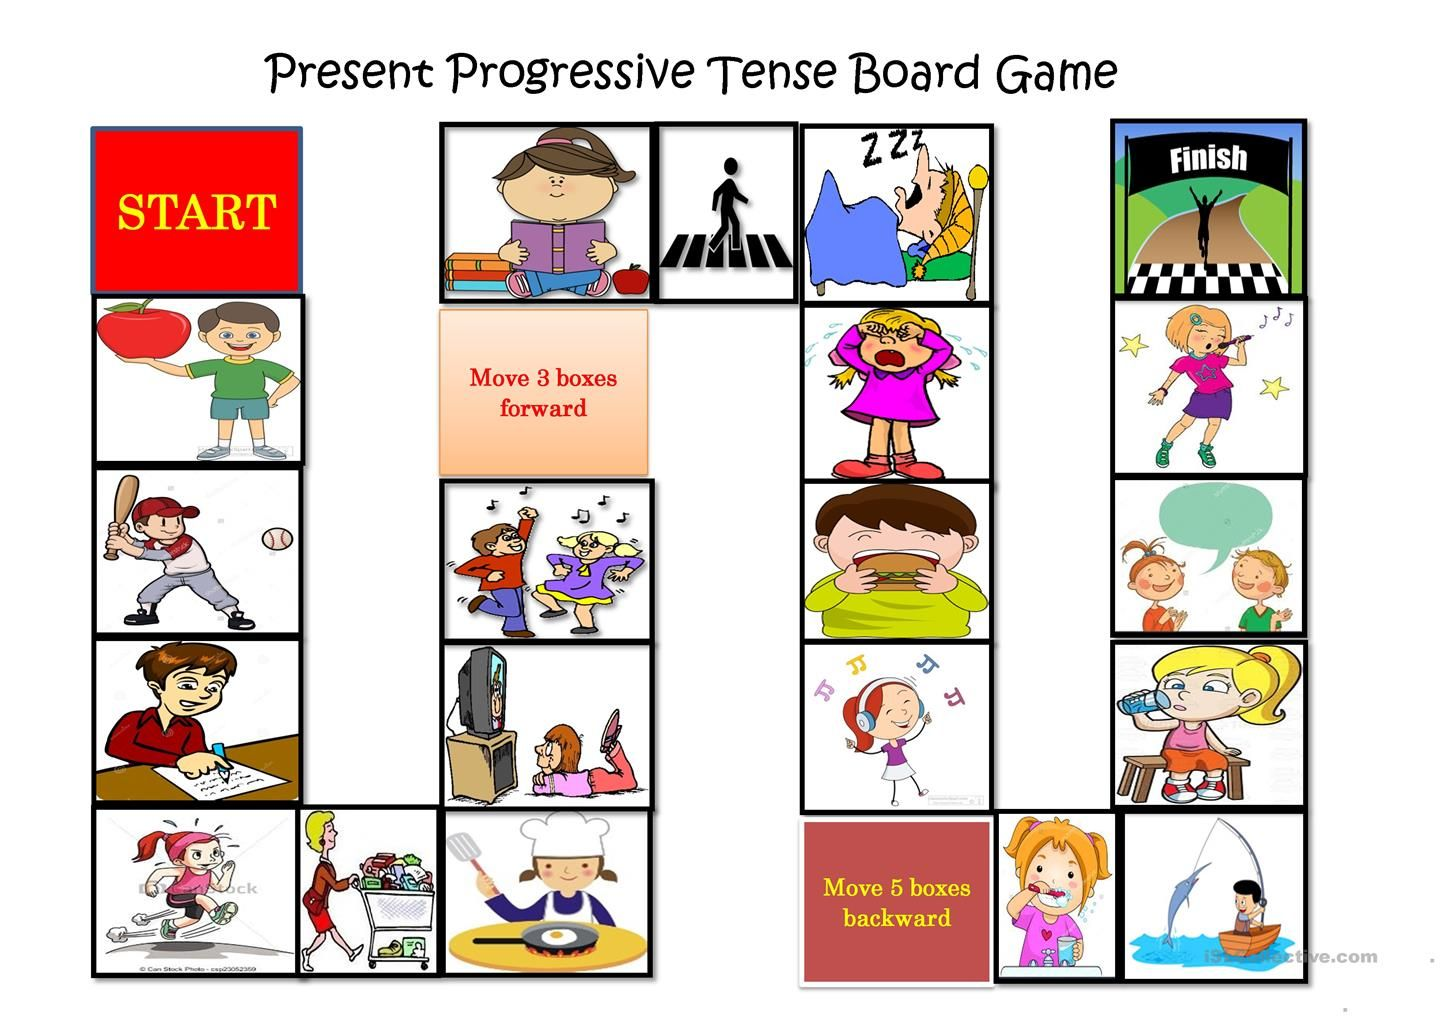 Present Progressive Tense Board Game